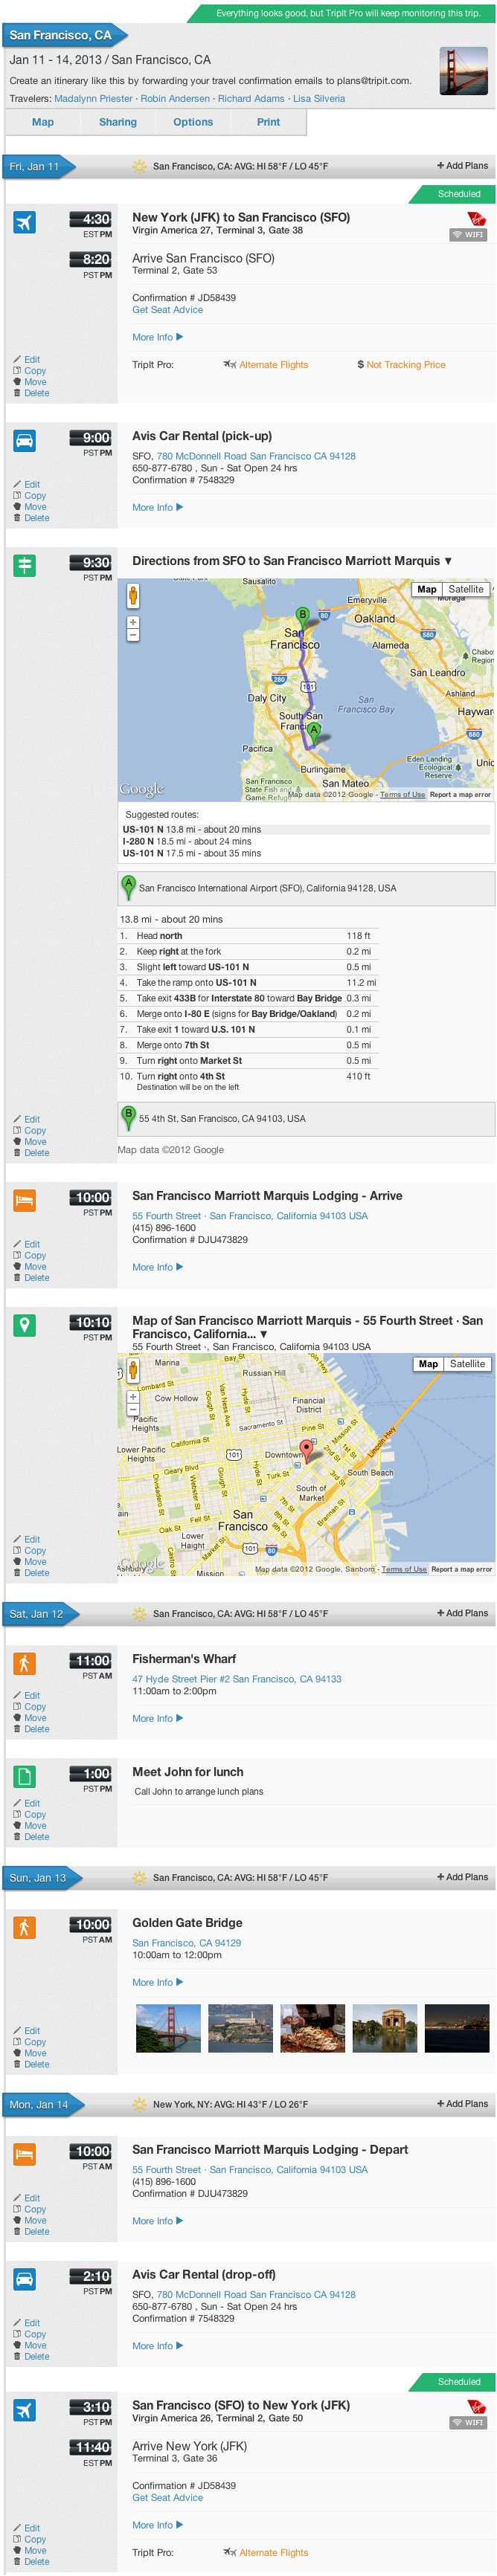 The mobile travel organizer creates one itinerary for all